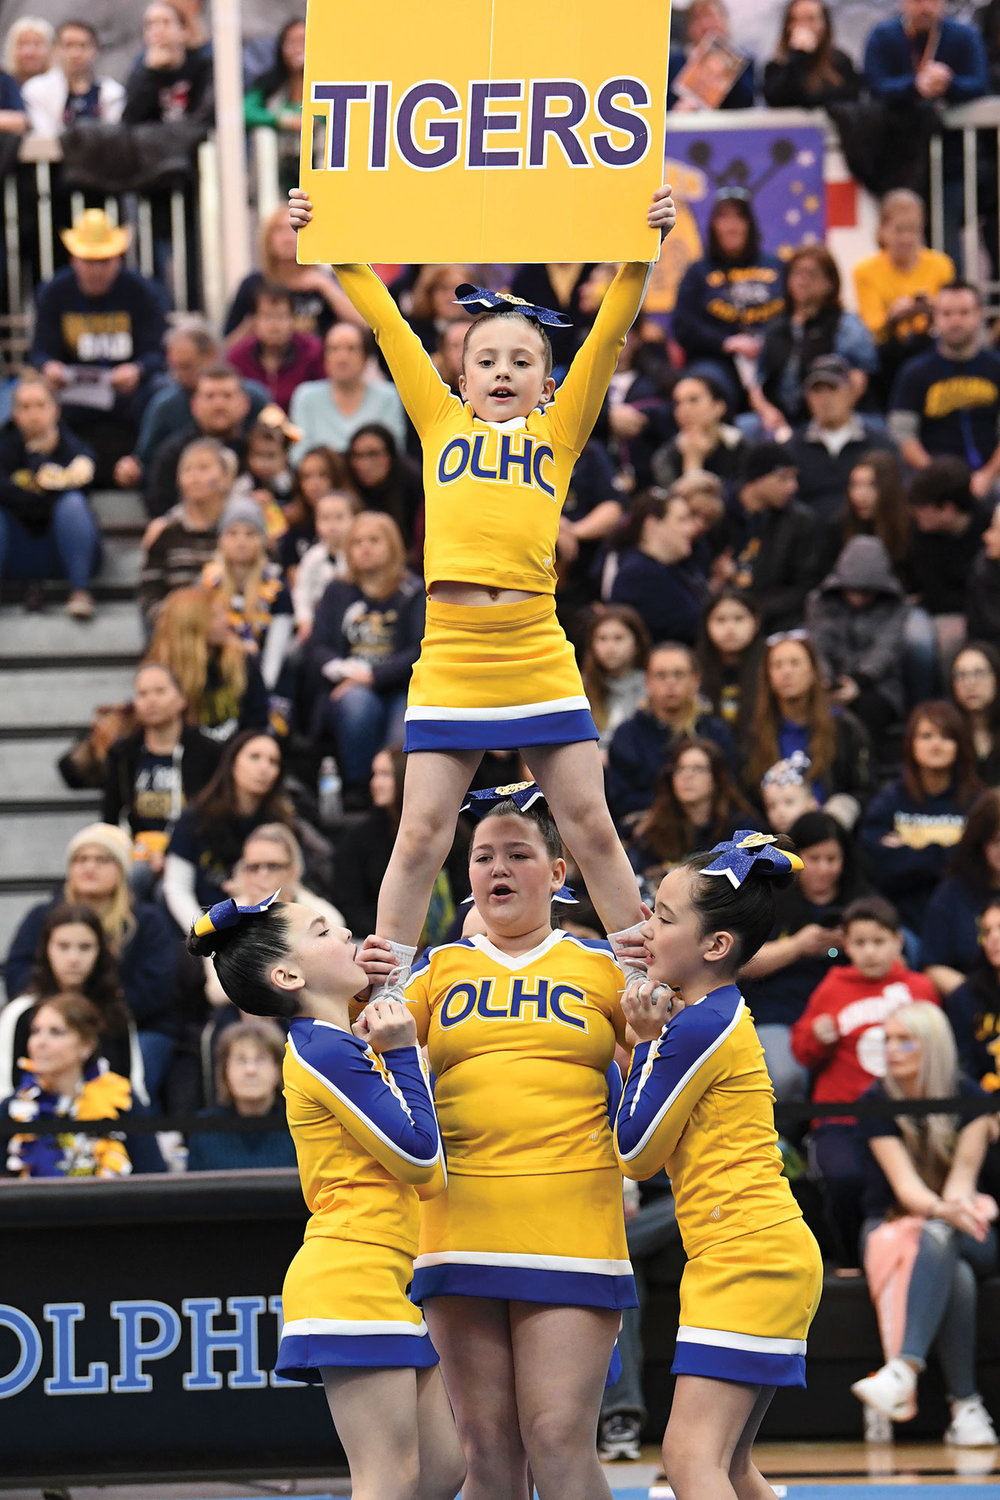 Our Lady Help of Christians cheerleaders lift their teammate in the Debs Small division.